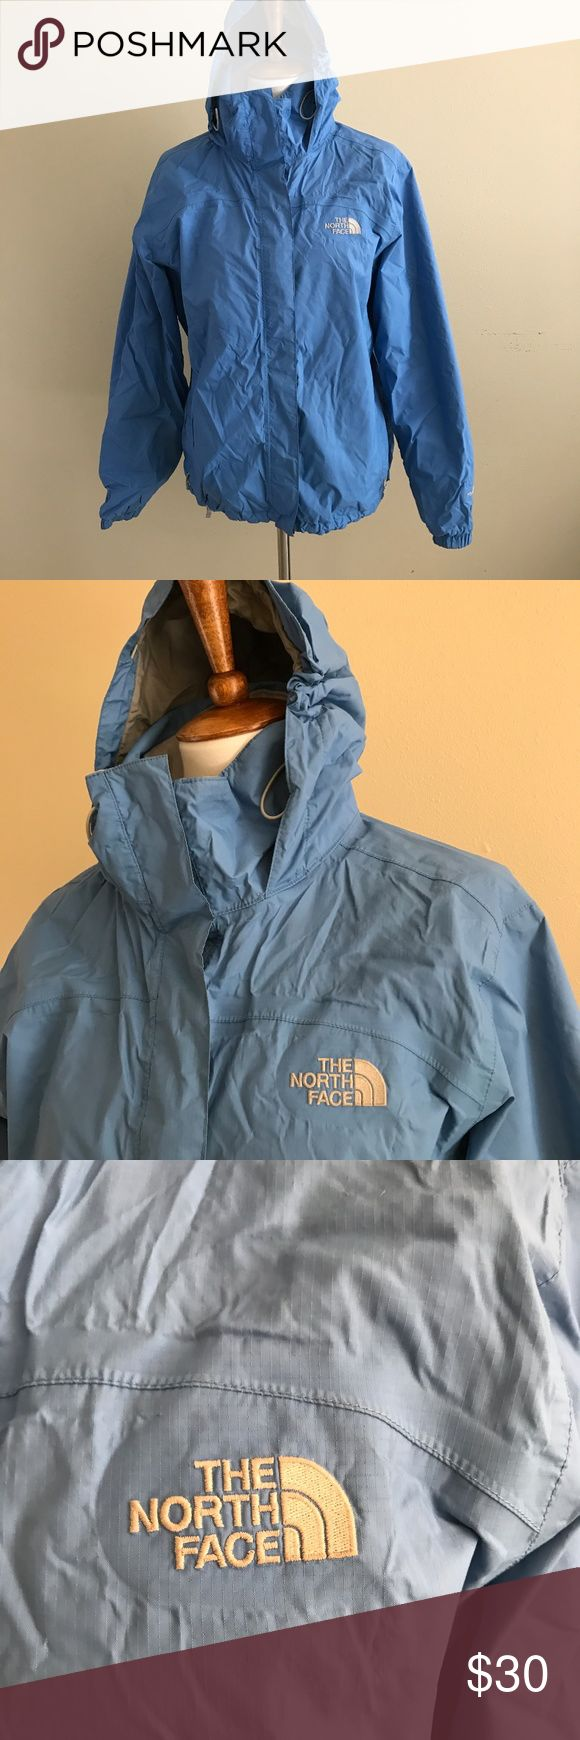 "The North Face Blue Rain Coat L The North Face Blue HyVent Rain Jacket Size Large Measures approx 23"" across the bust and 27"" in length Pre-owned with tons of life left. Some peeling inside (see photo), some piling around the neck, some fuzzies on the velcro. Outside is in nice condition The North Face Jackets & Coats"